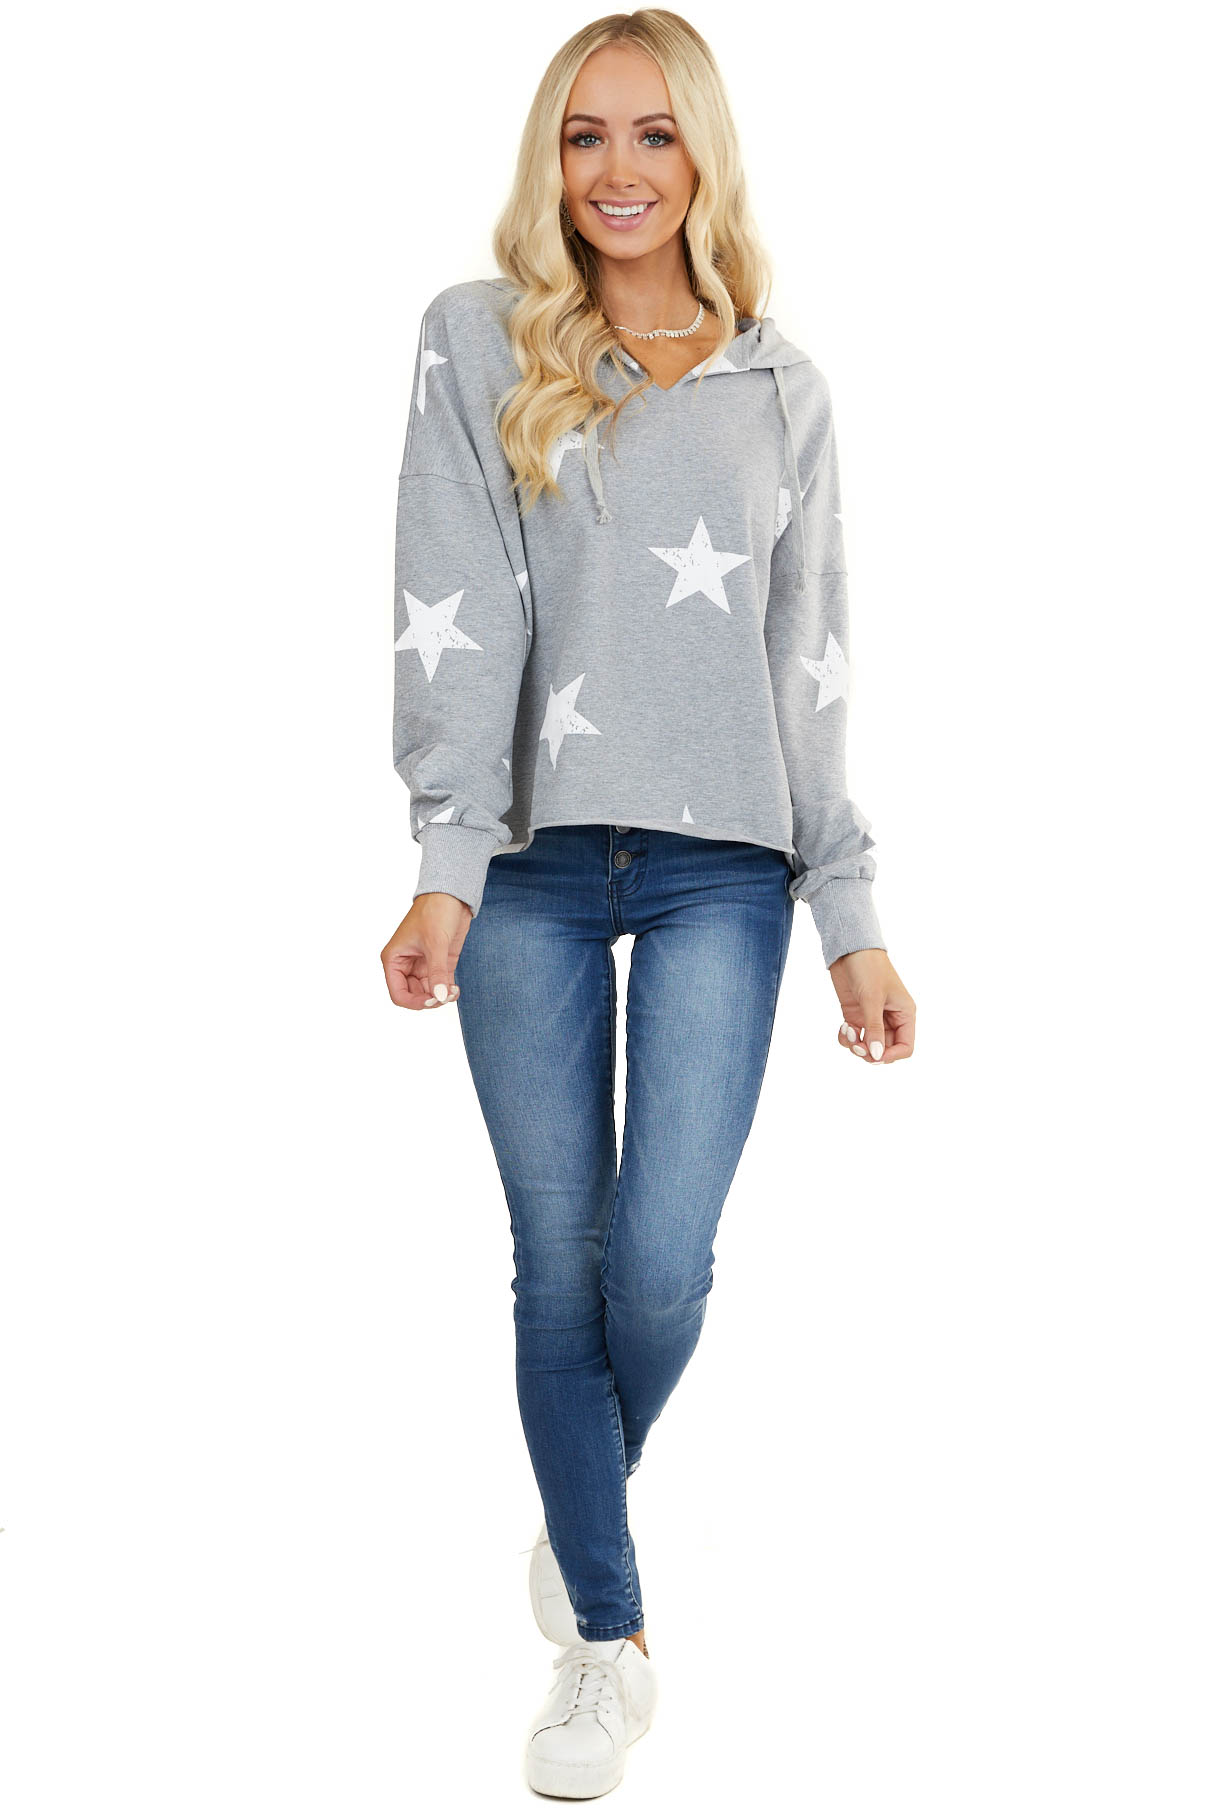 Heather Grey V Neck Hoodie with Faded White Star Print